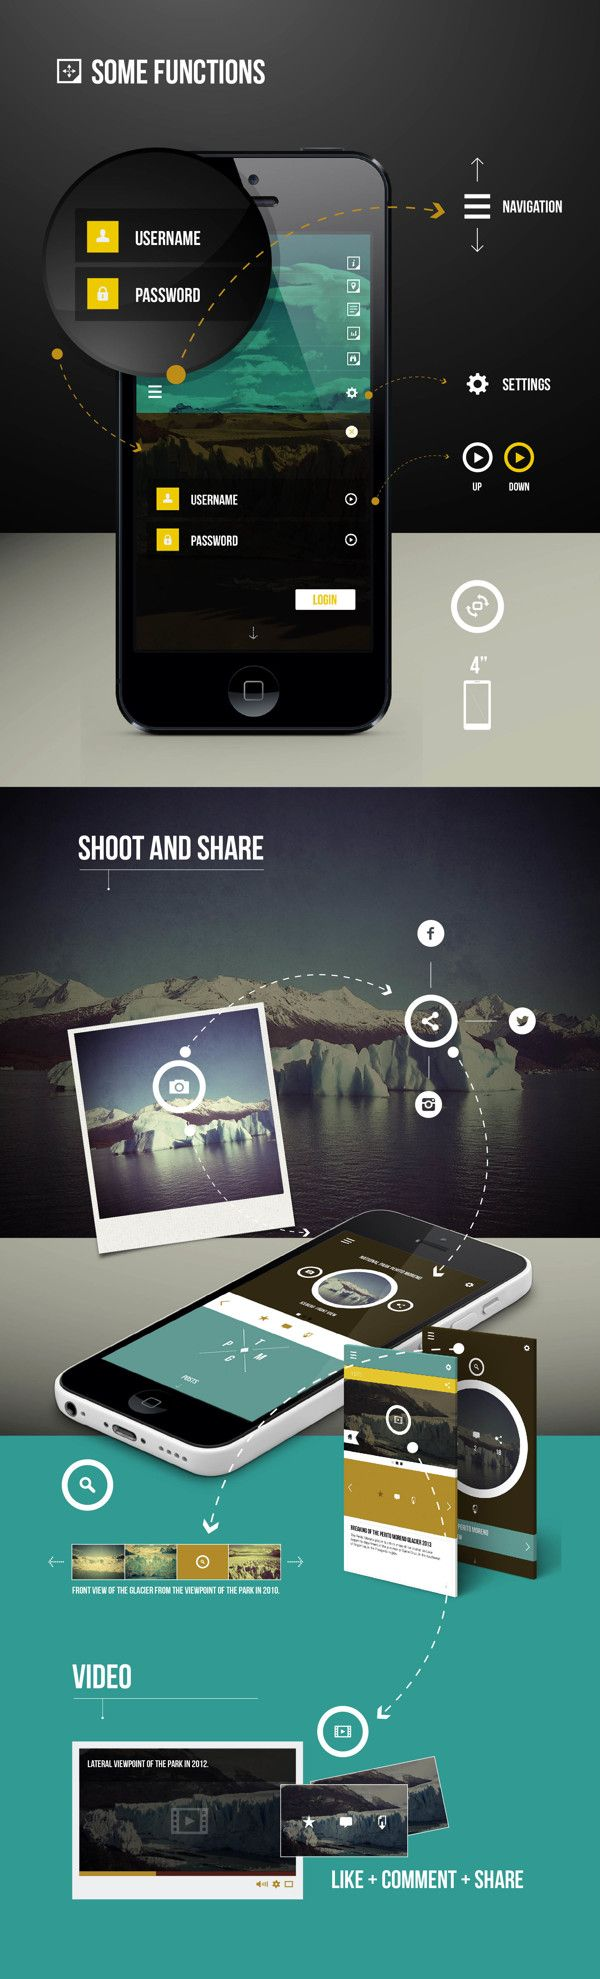 The Glacier - Mobile App Concept by Martín Liveratore, via Behance